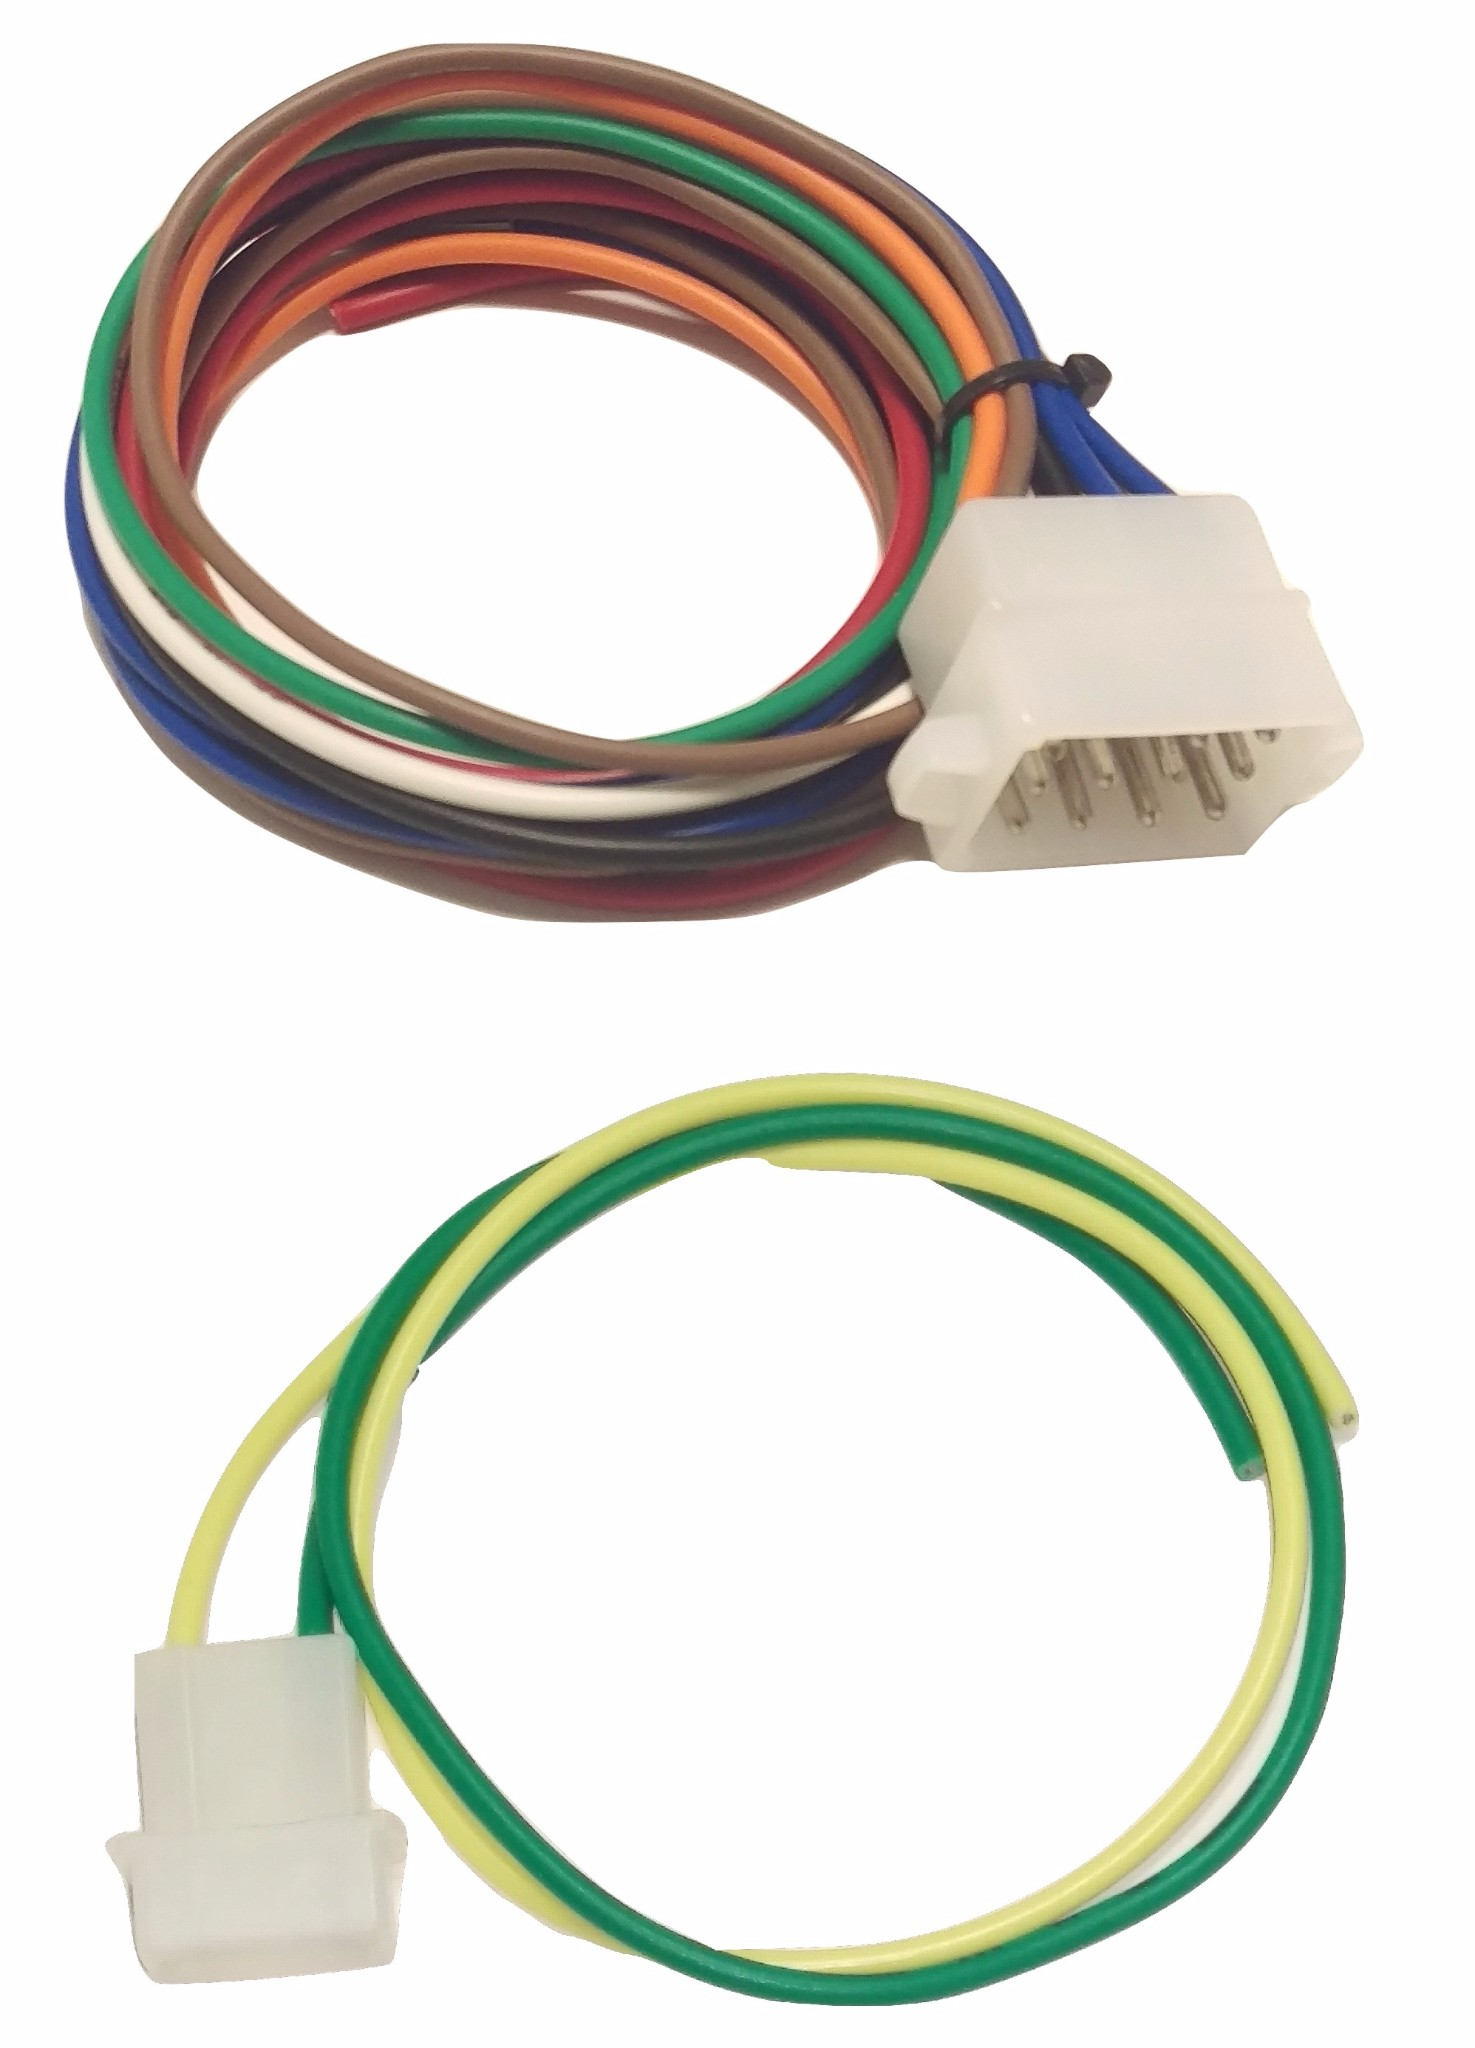 hight resolution of whelen power harness plug cable 12 3 pin 295hfsa1 whelen 295hfsa1 wiring harness